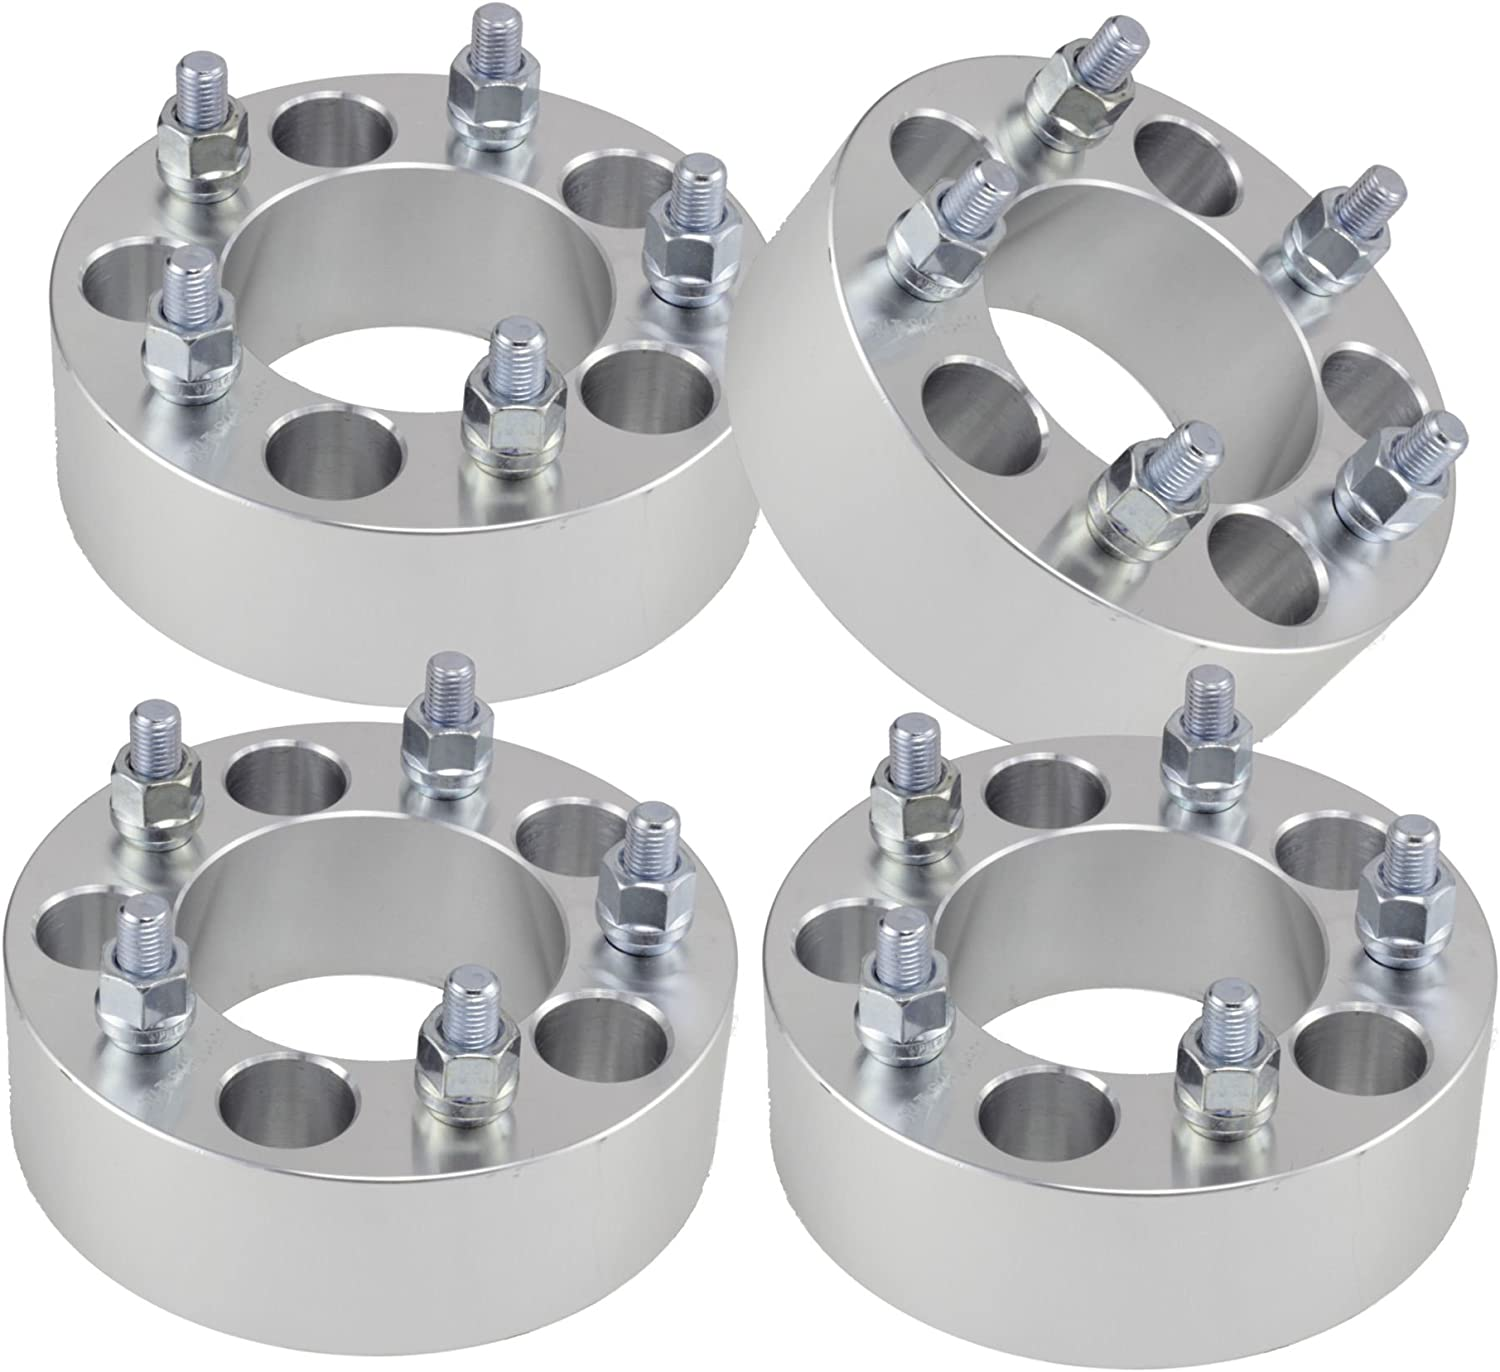 5x5 TO 5x4.75 WHEEL ADAPTERS SPACERS 1.5 INCH 38MM THICK 5x5.5 TO 5x4.75 12x1.5